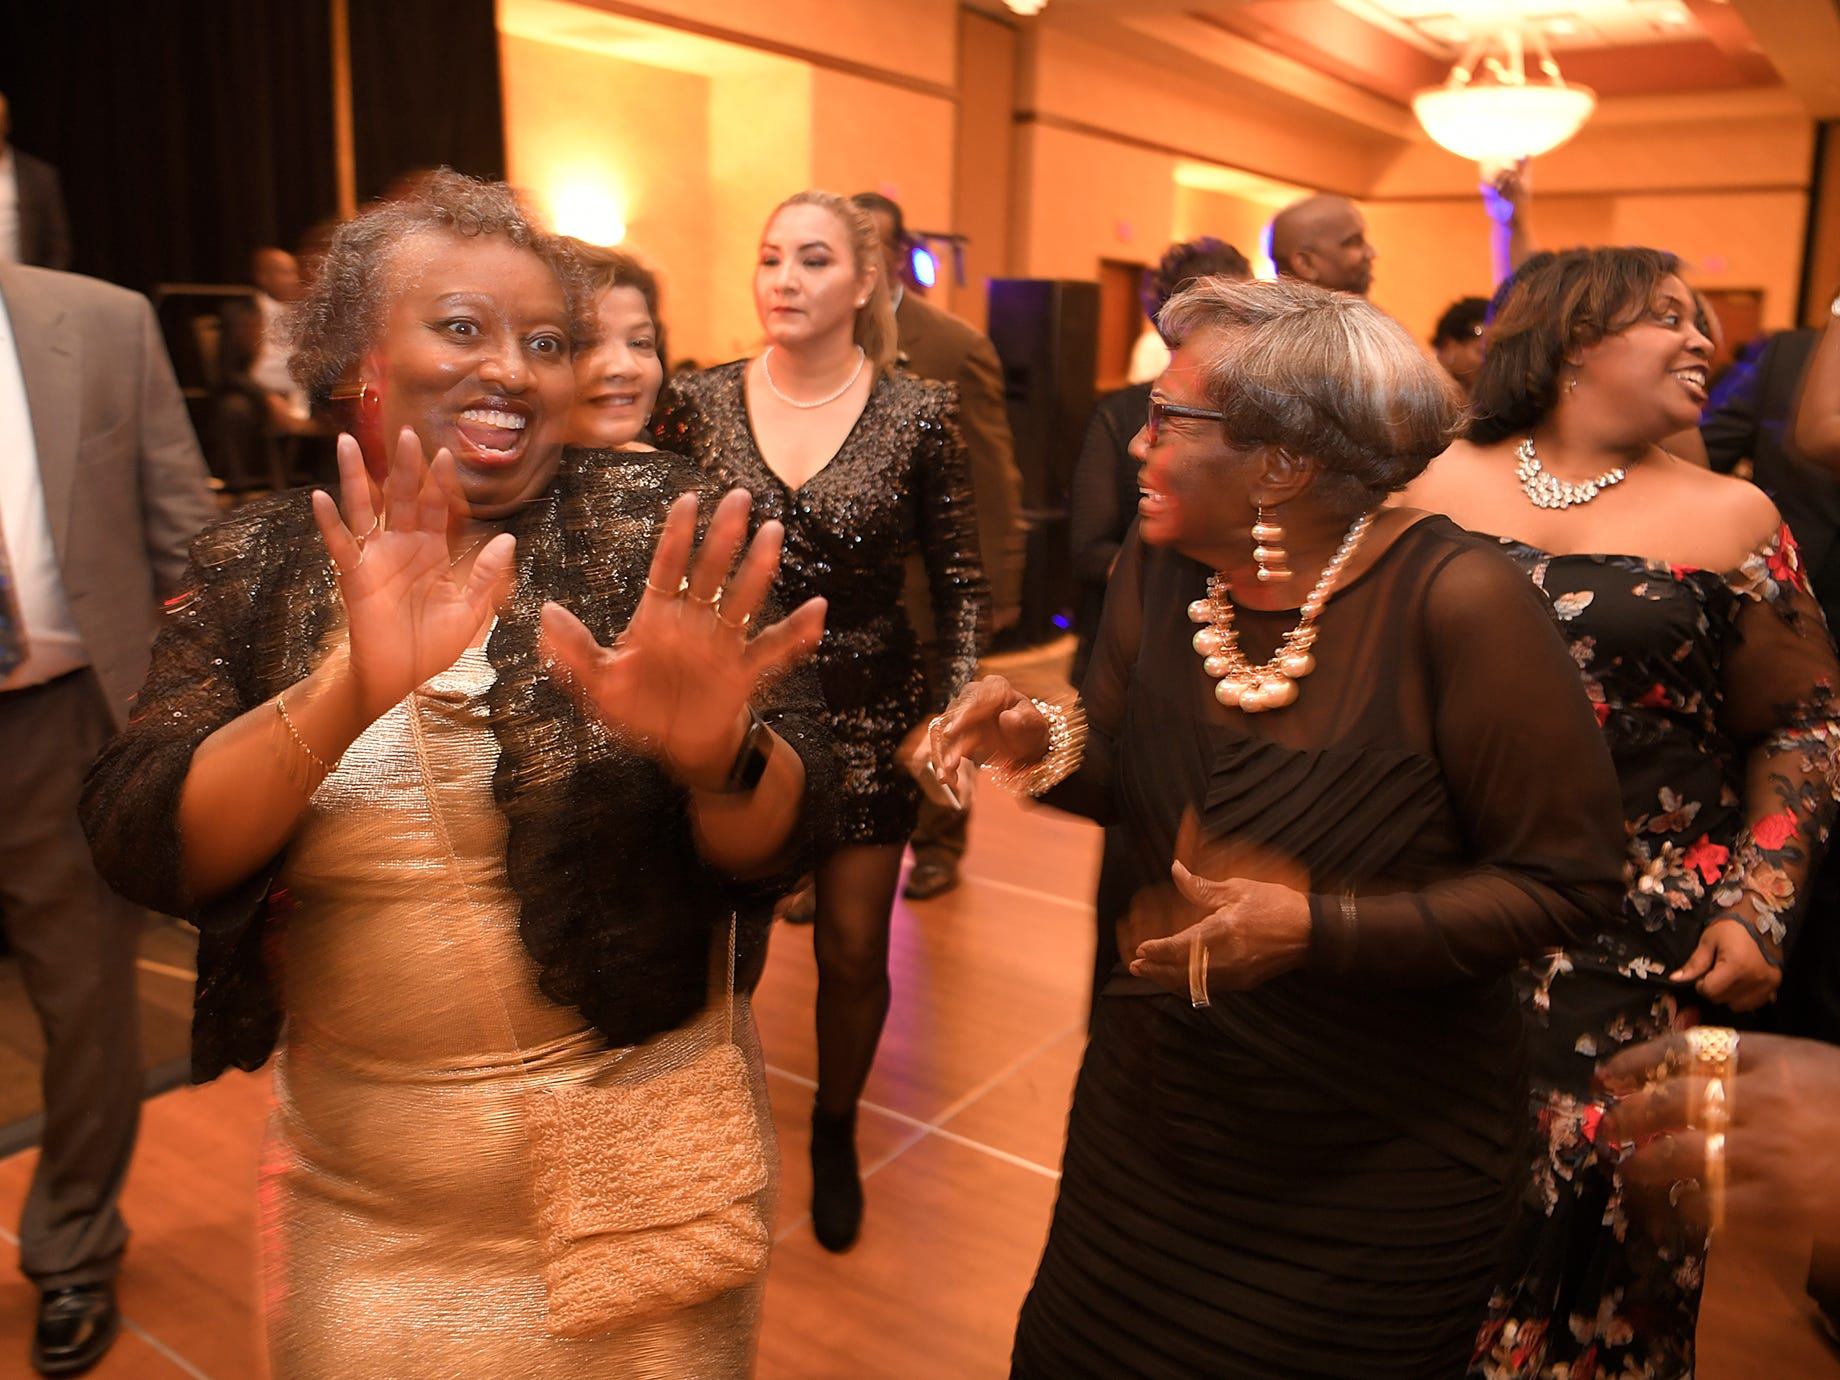 People dance at the African American Heritage Society=s 18th Annual Black Tie Affair at the Embassy Suites in Franklin on Sat., Feb. 2, 2019.